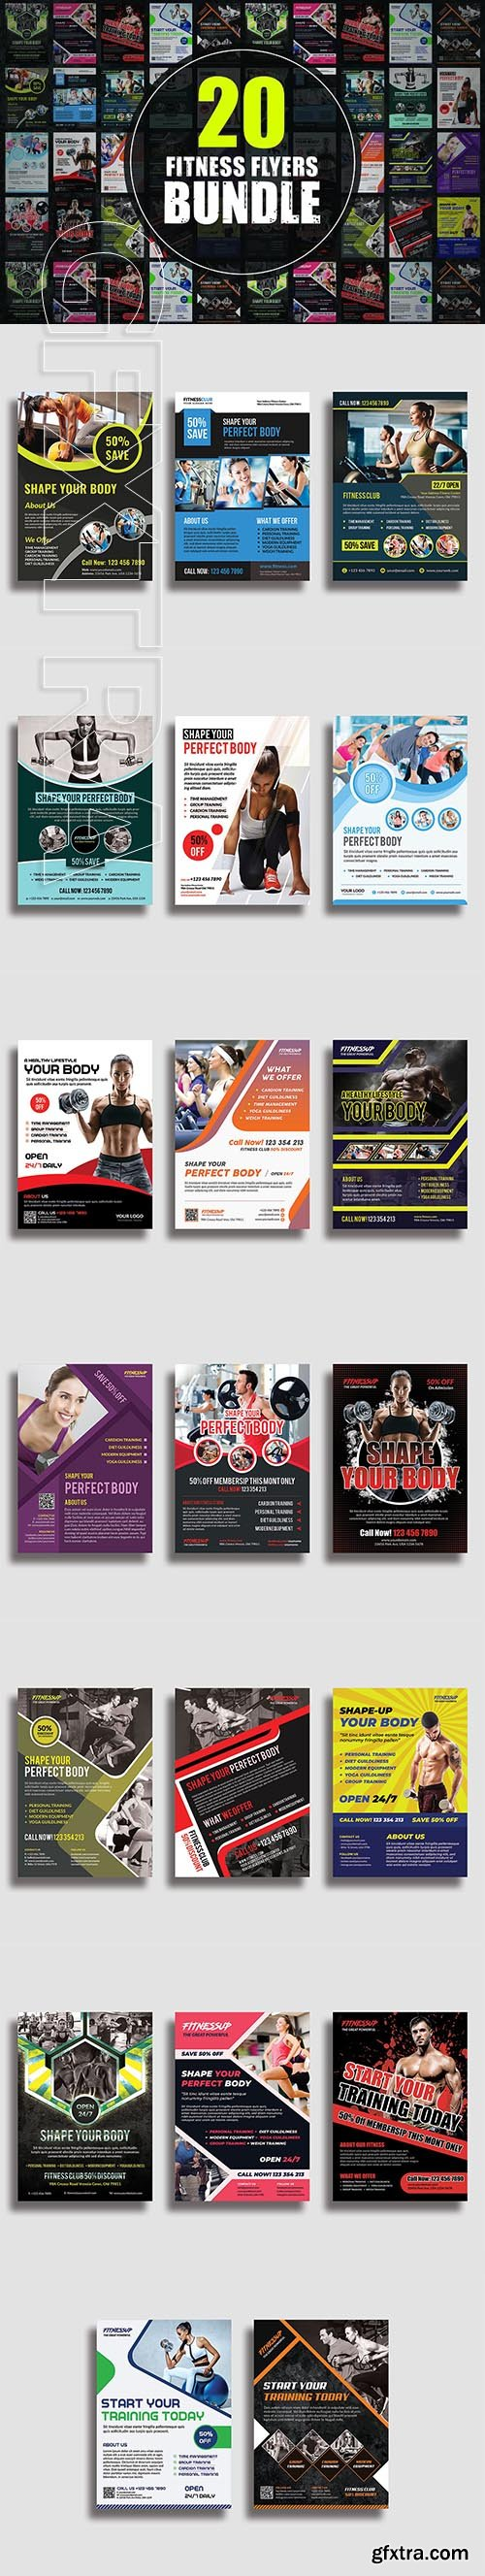 CreativeMarket - 20 Fitness Flyers Bundle 3340415